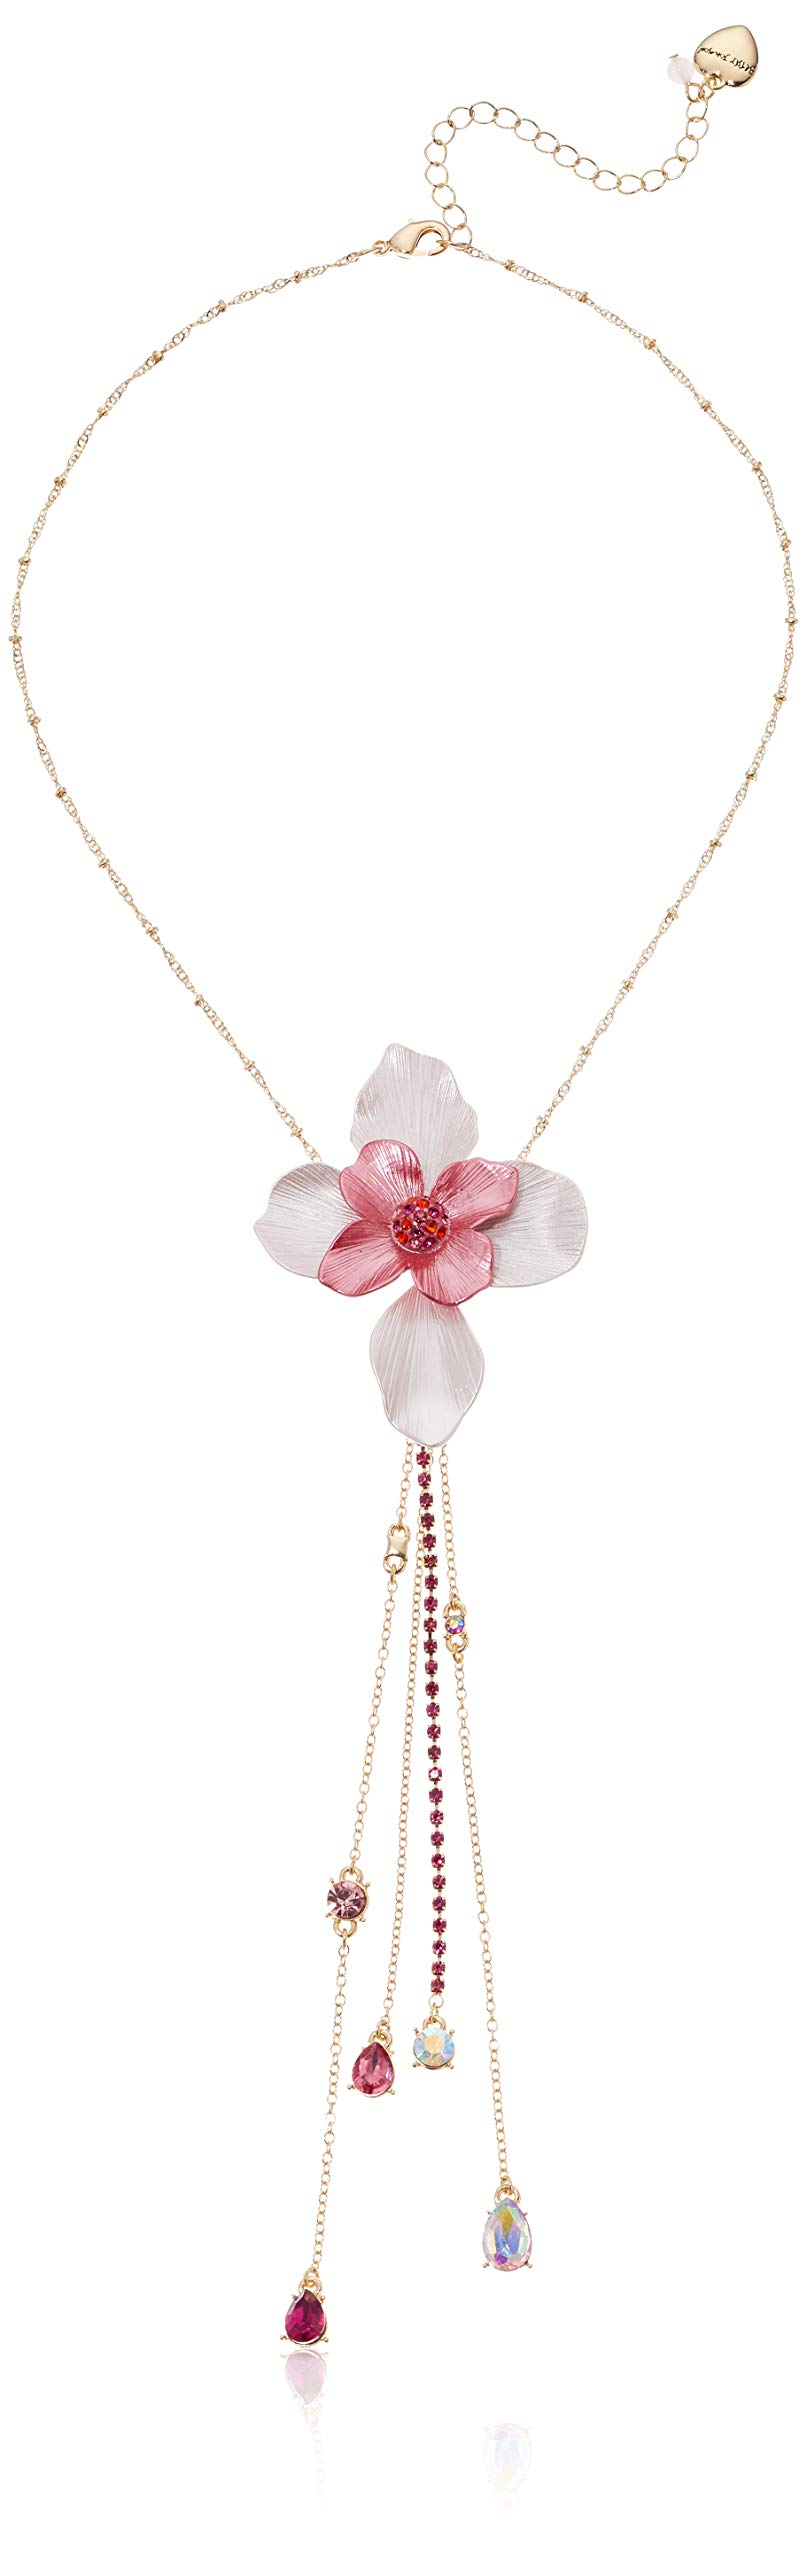 Betsey Johnson (GBG) Women's Floral Y-Shaped Necklace, Pink, One Size